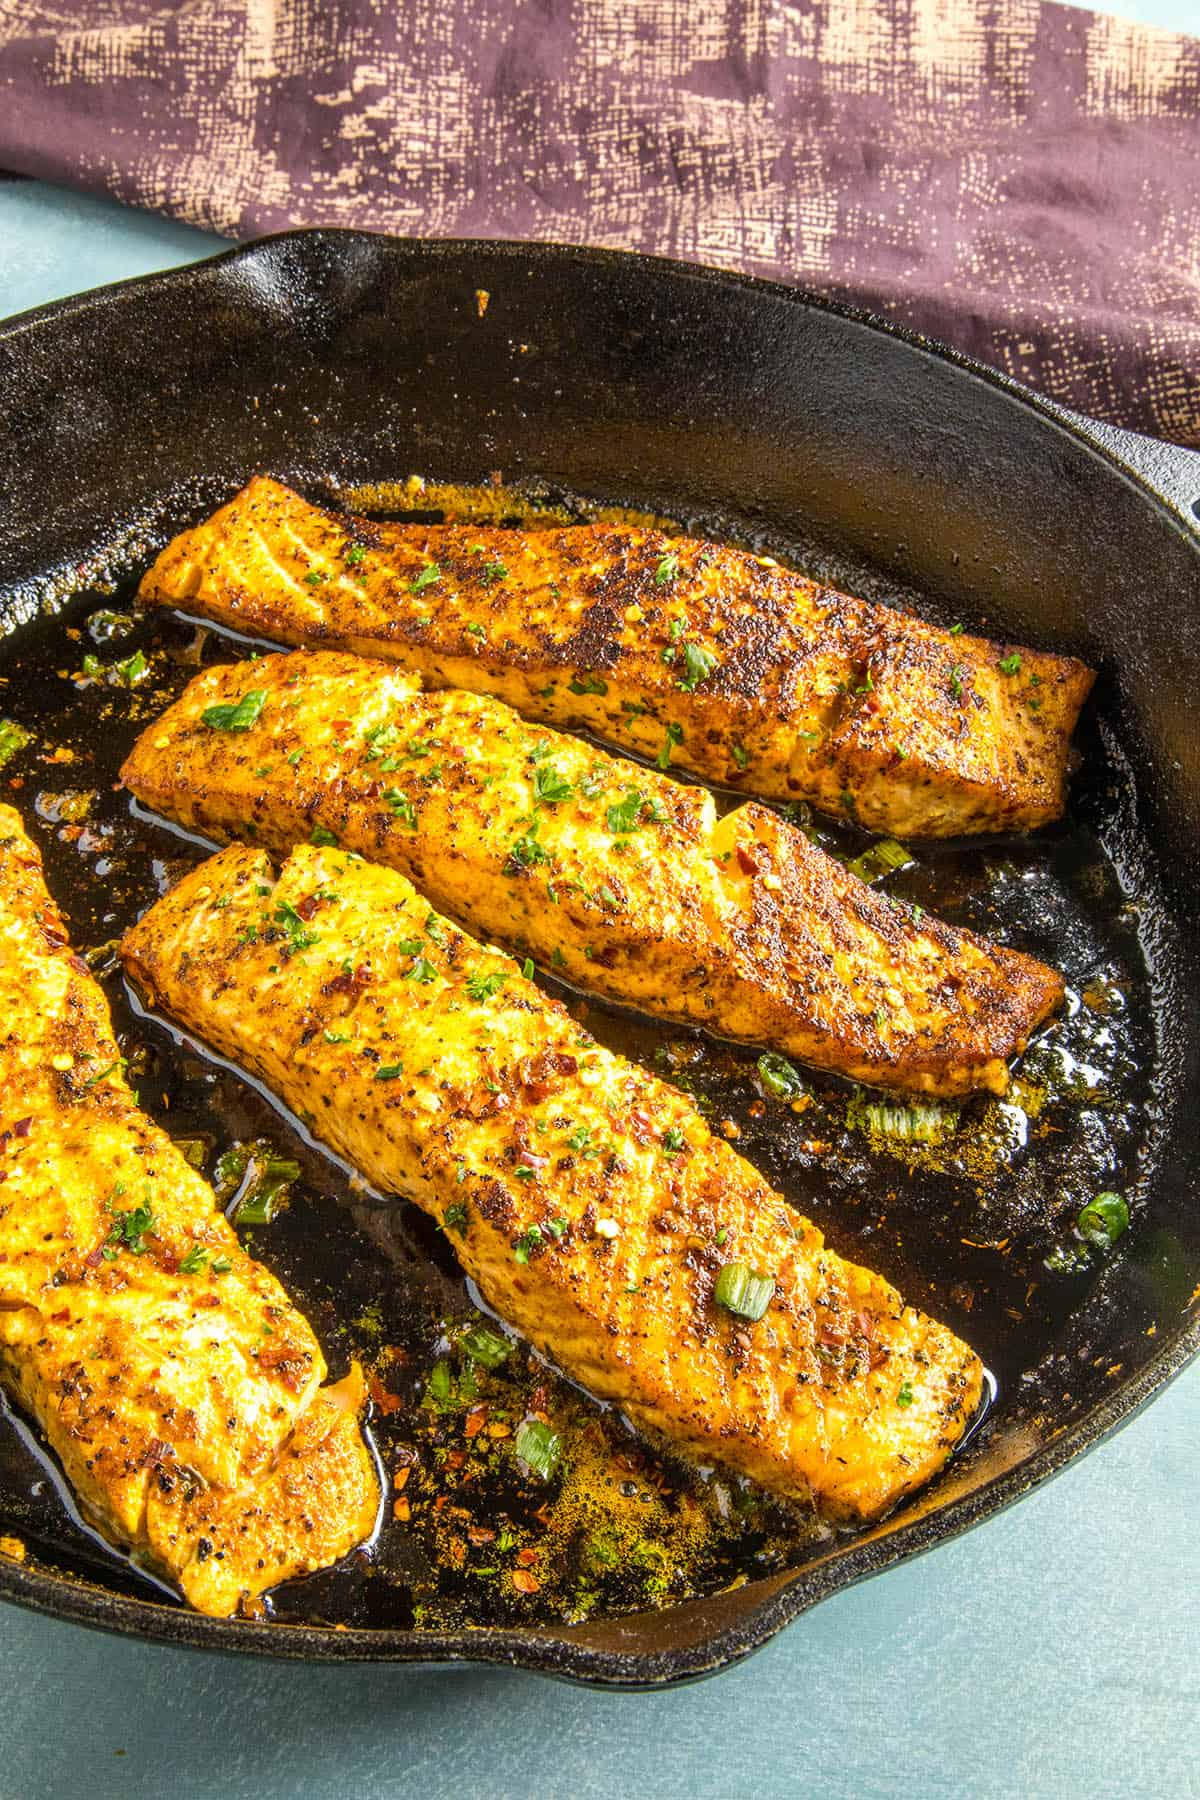 Blackened Salmon in a pan